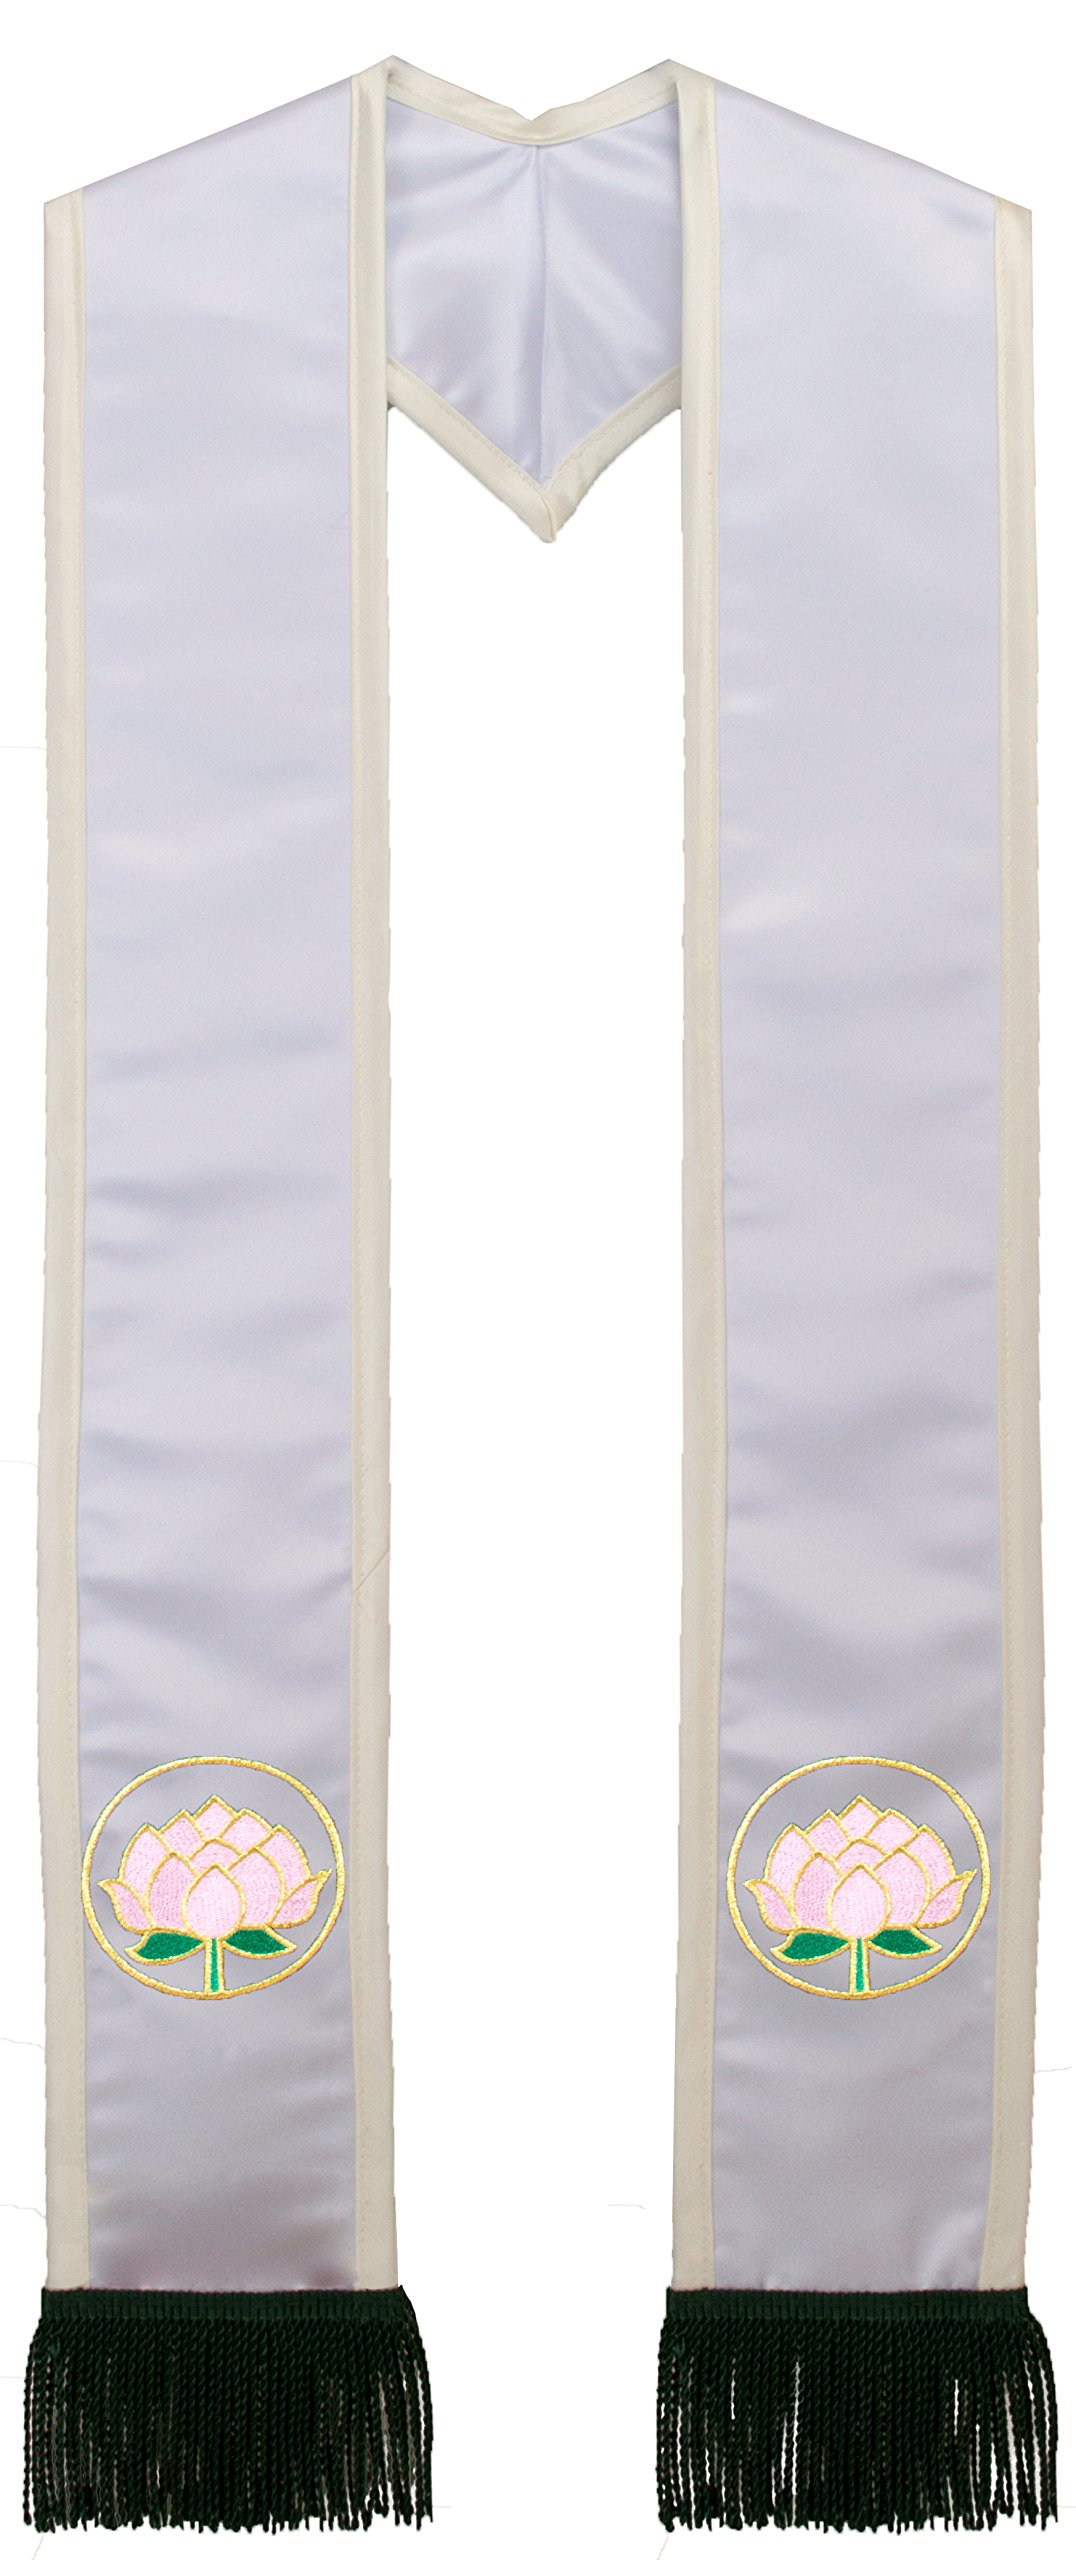 Deluxe White Satin Clergy Stole with Embroidered Lotus Flower Border and Fringe